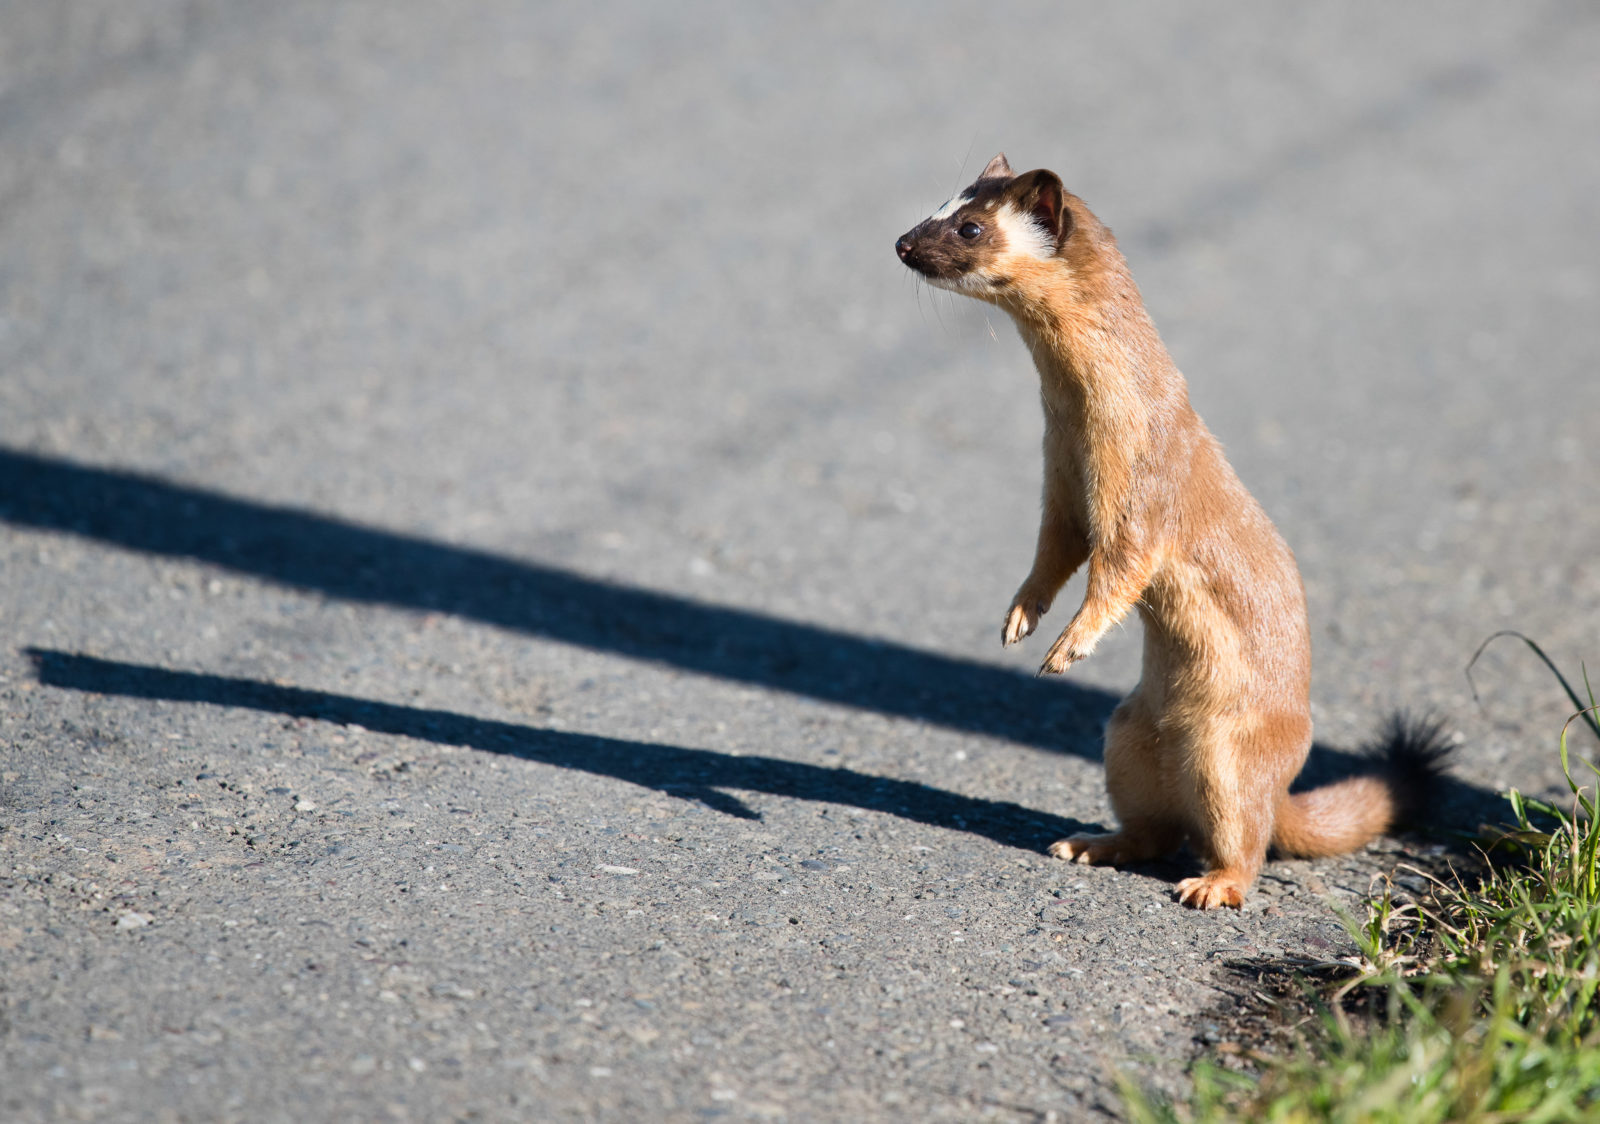 A weasel and his shadow